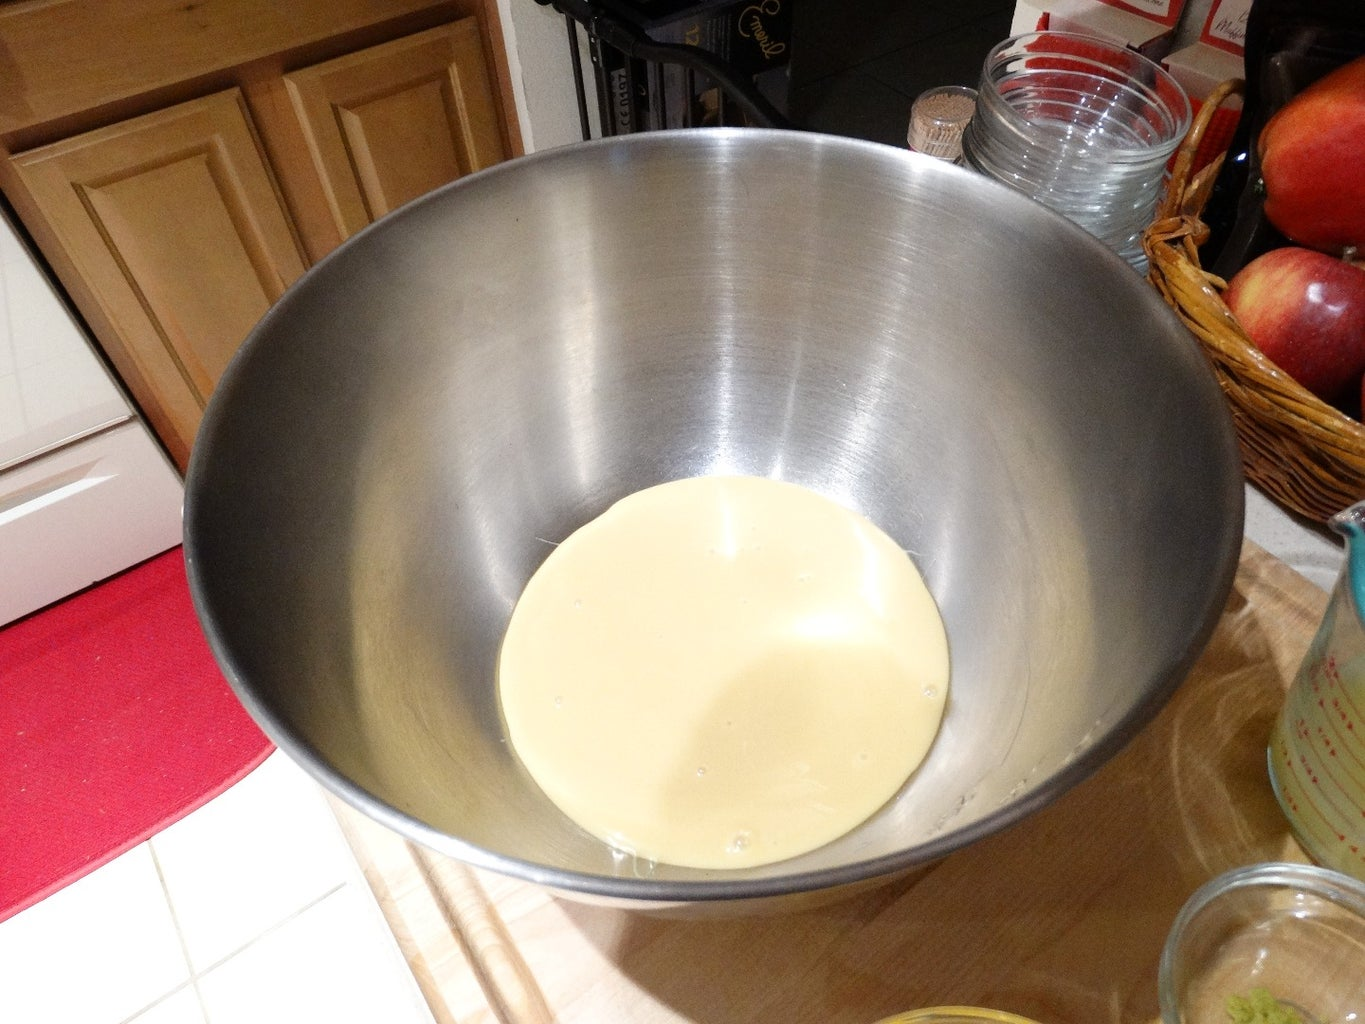 Mix the Pie Filling...